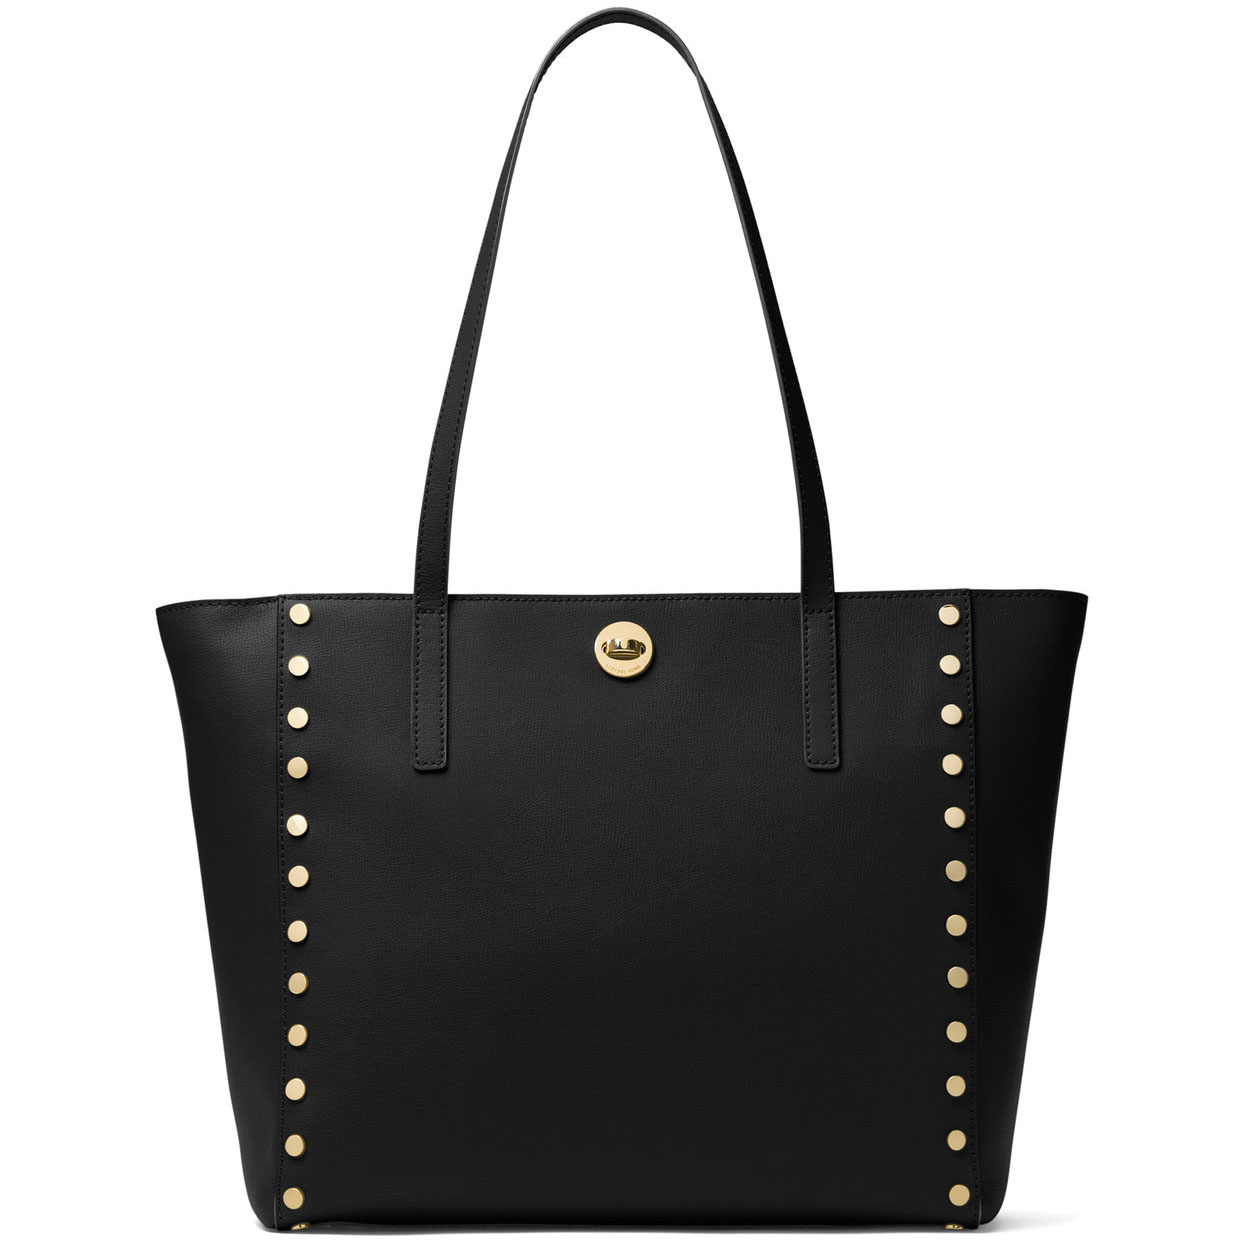 Michael Kors Rivington Stud Large Leather Tote Black # 30S7GR7T3L